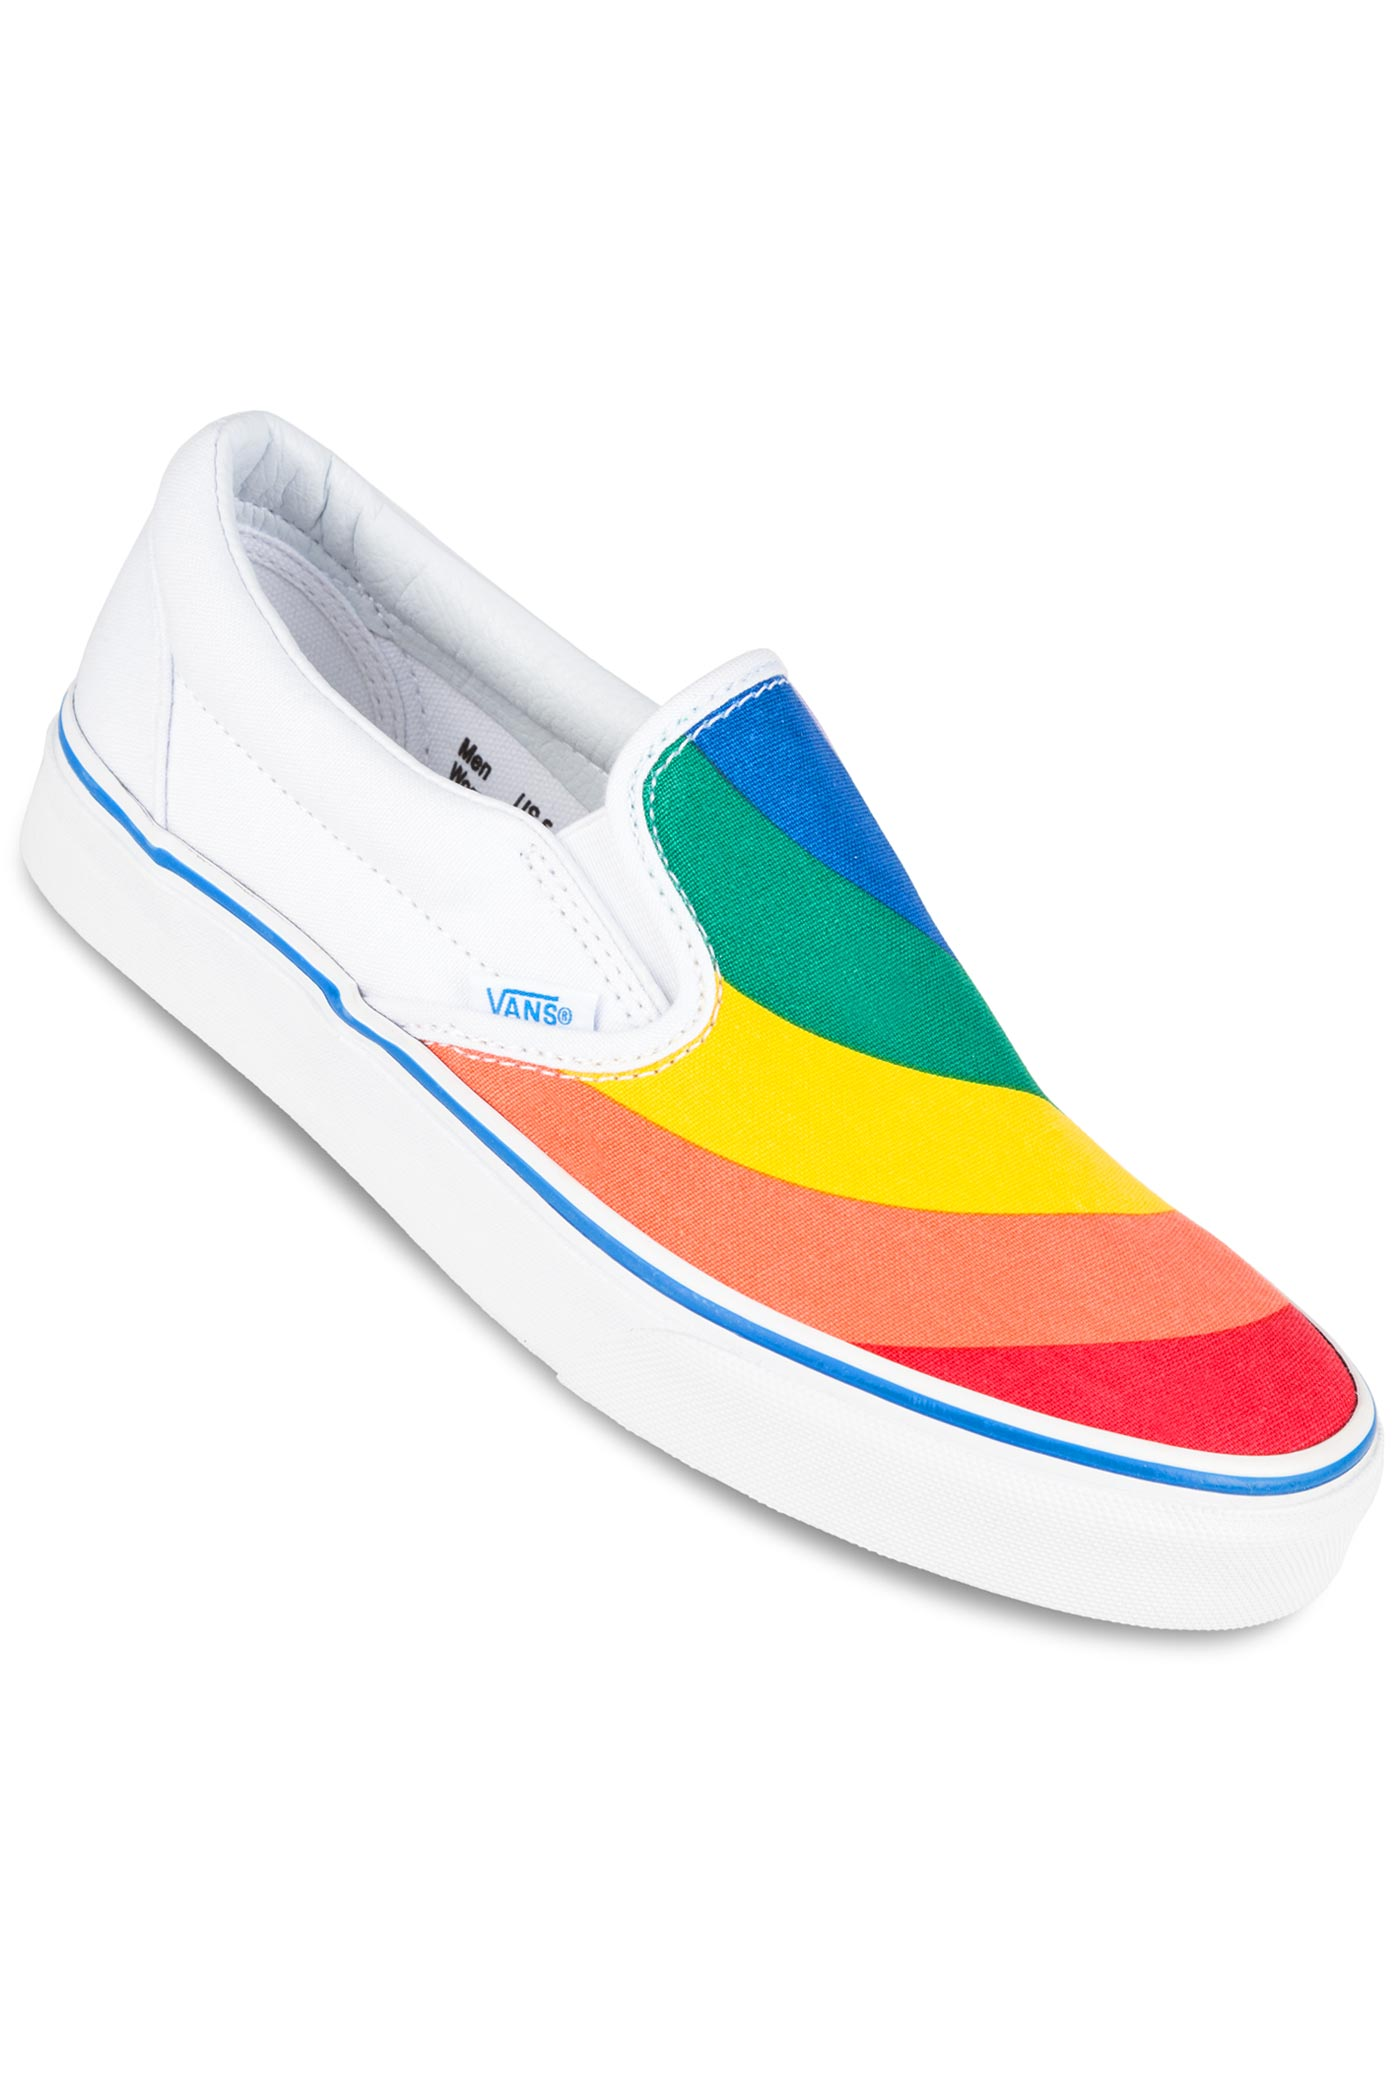 Vans Classic Slip-On Shoe women (rainbow true white) buy at skatedeluxe 7969c8ac5